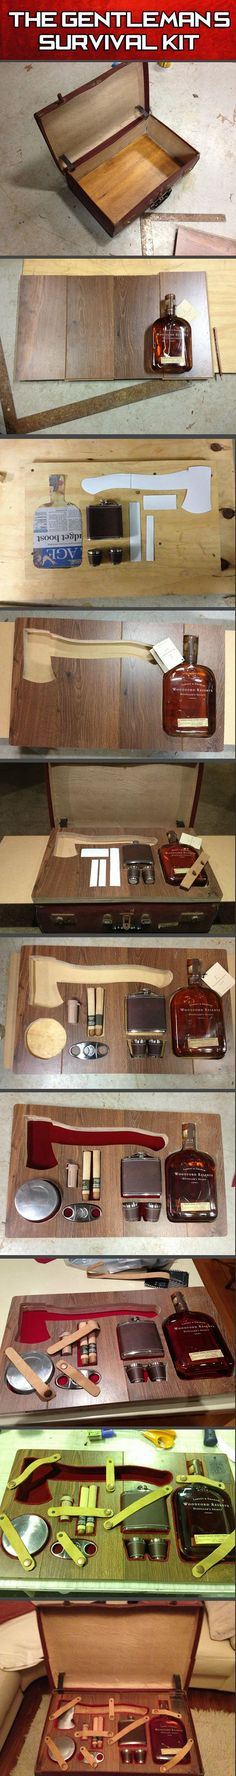 The gentleman's survival kit…so doing this